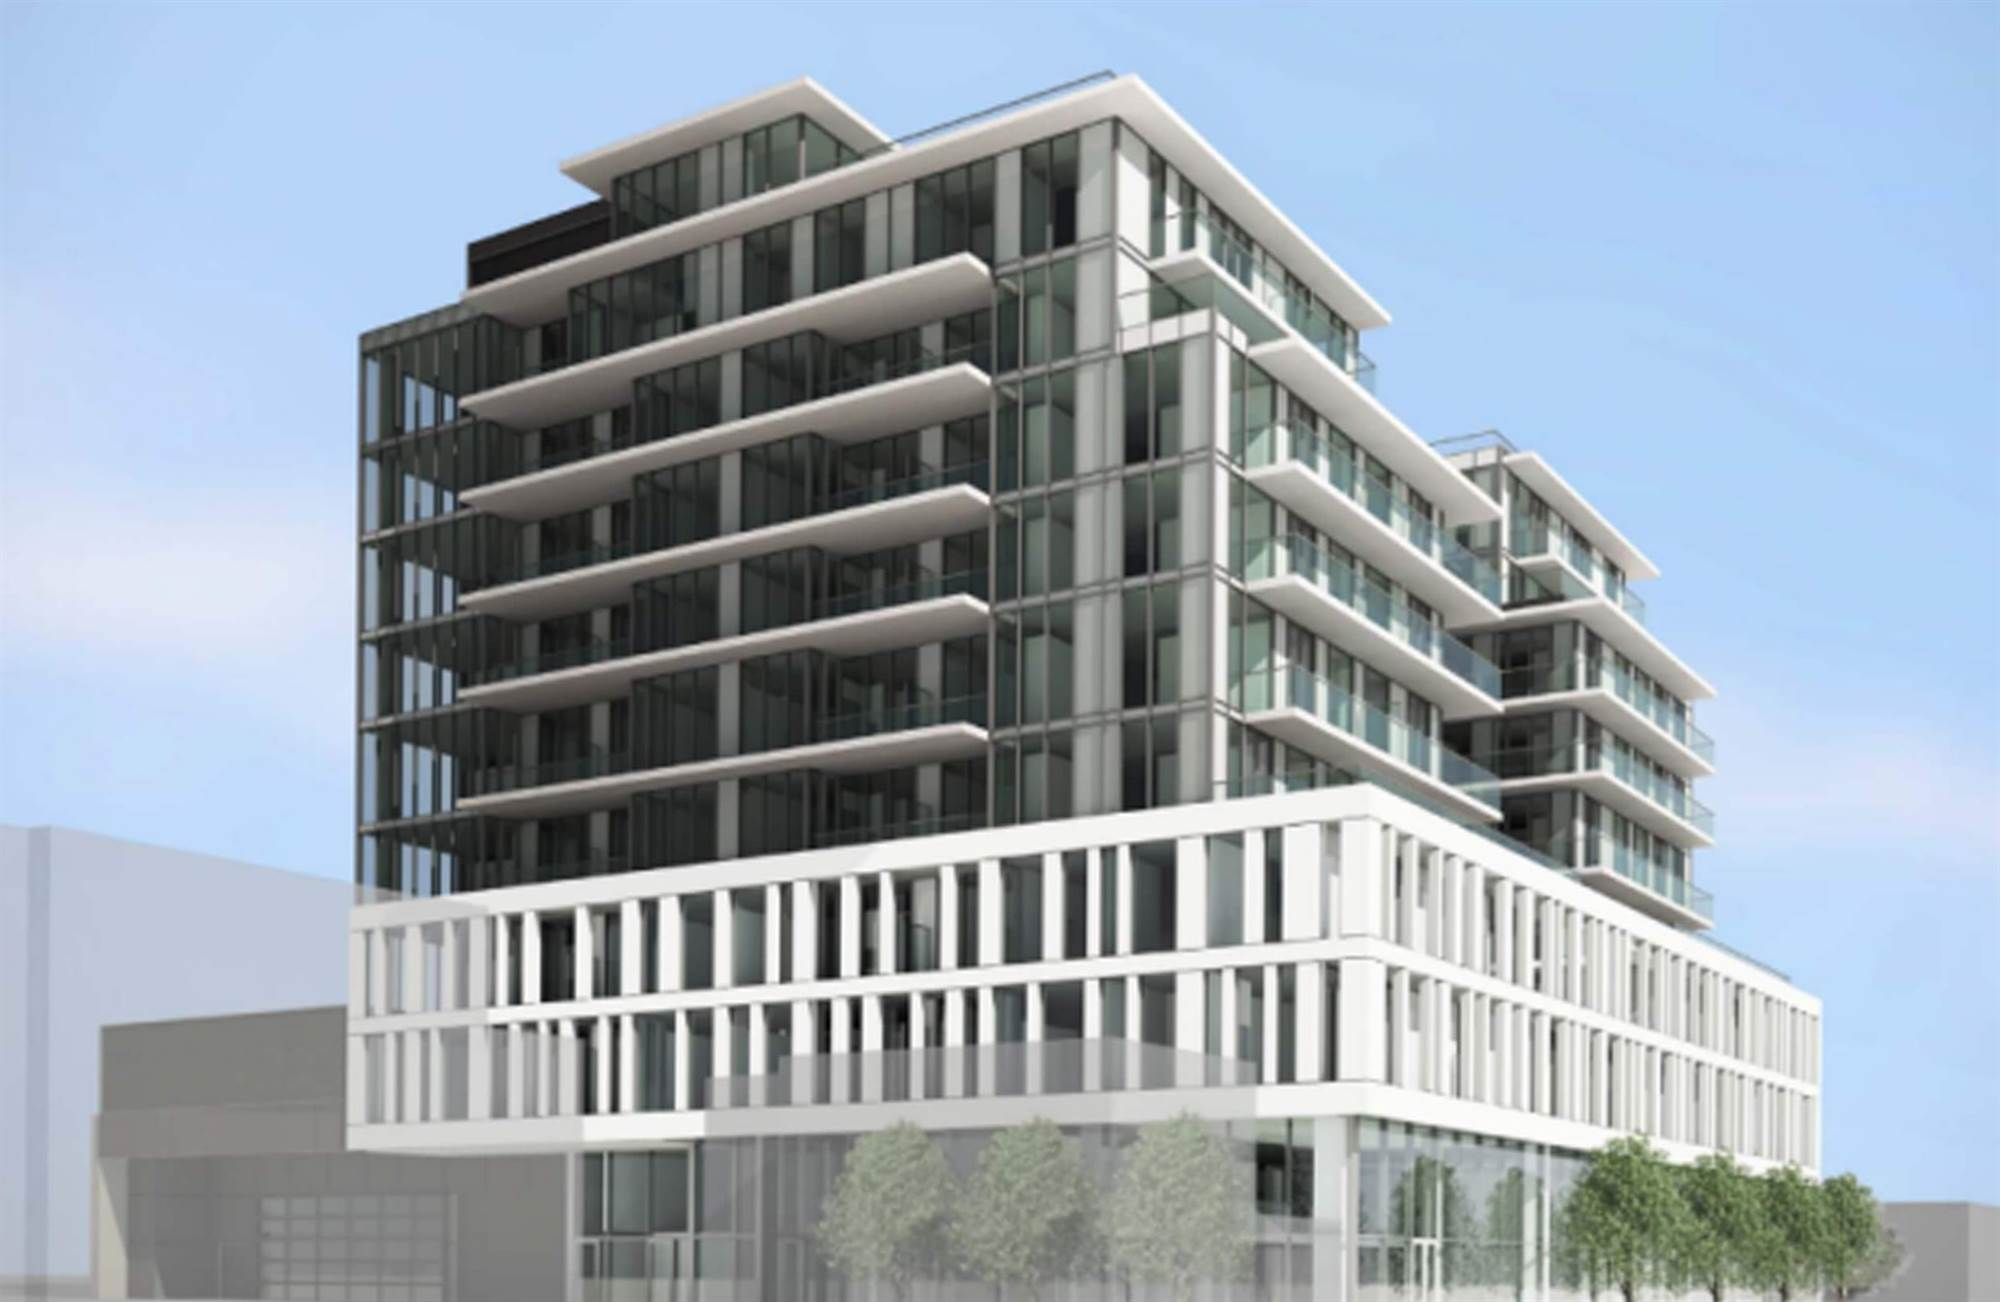 exterior-view-of-the-oscar-residences-at-bathurst-st-amp-dupont-st-11-v38-full